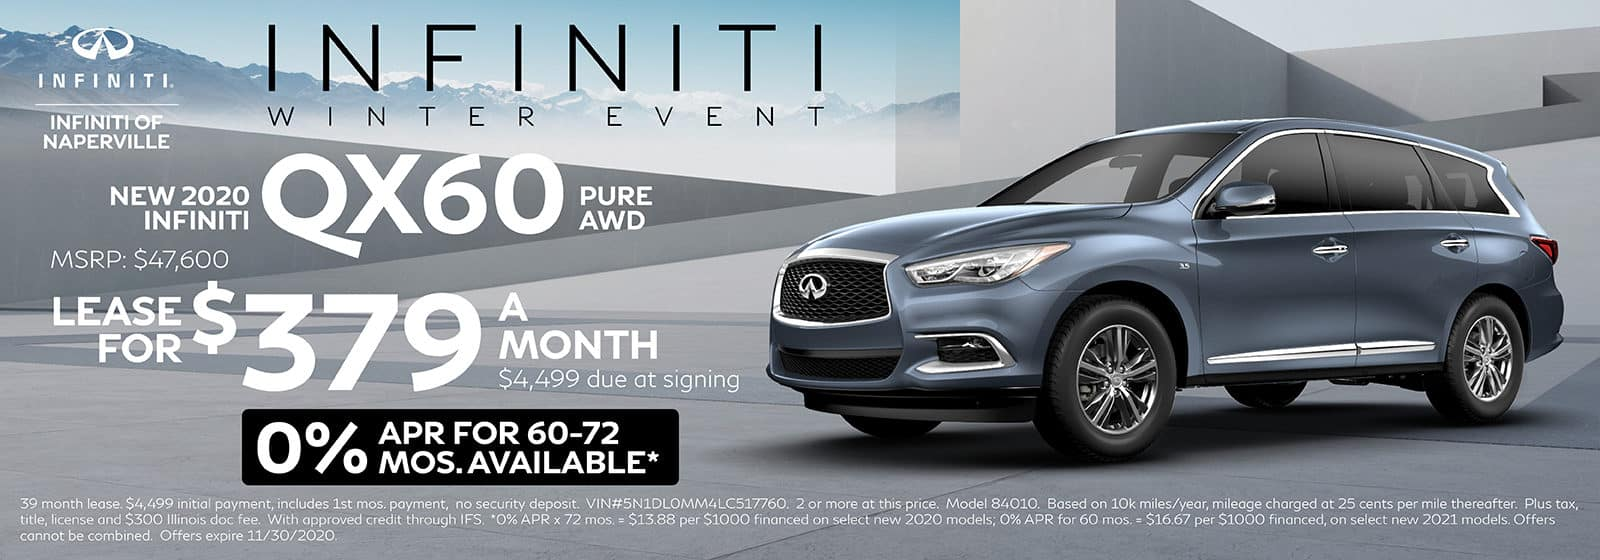 2020 INFINITI QX60 lease offer, $379/mo for 72 Months | Naperville, IL